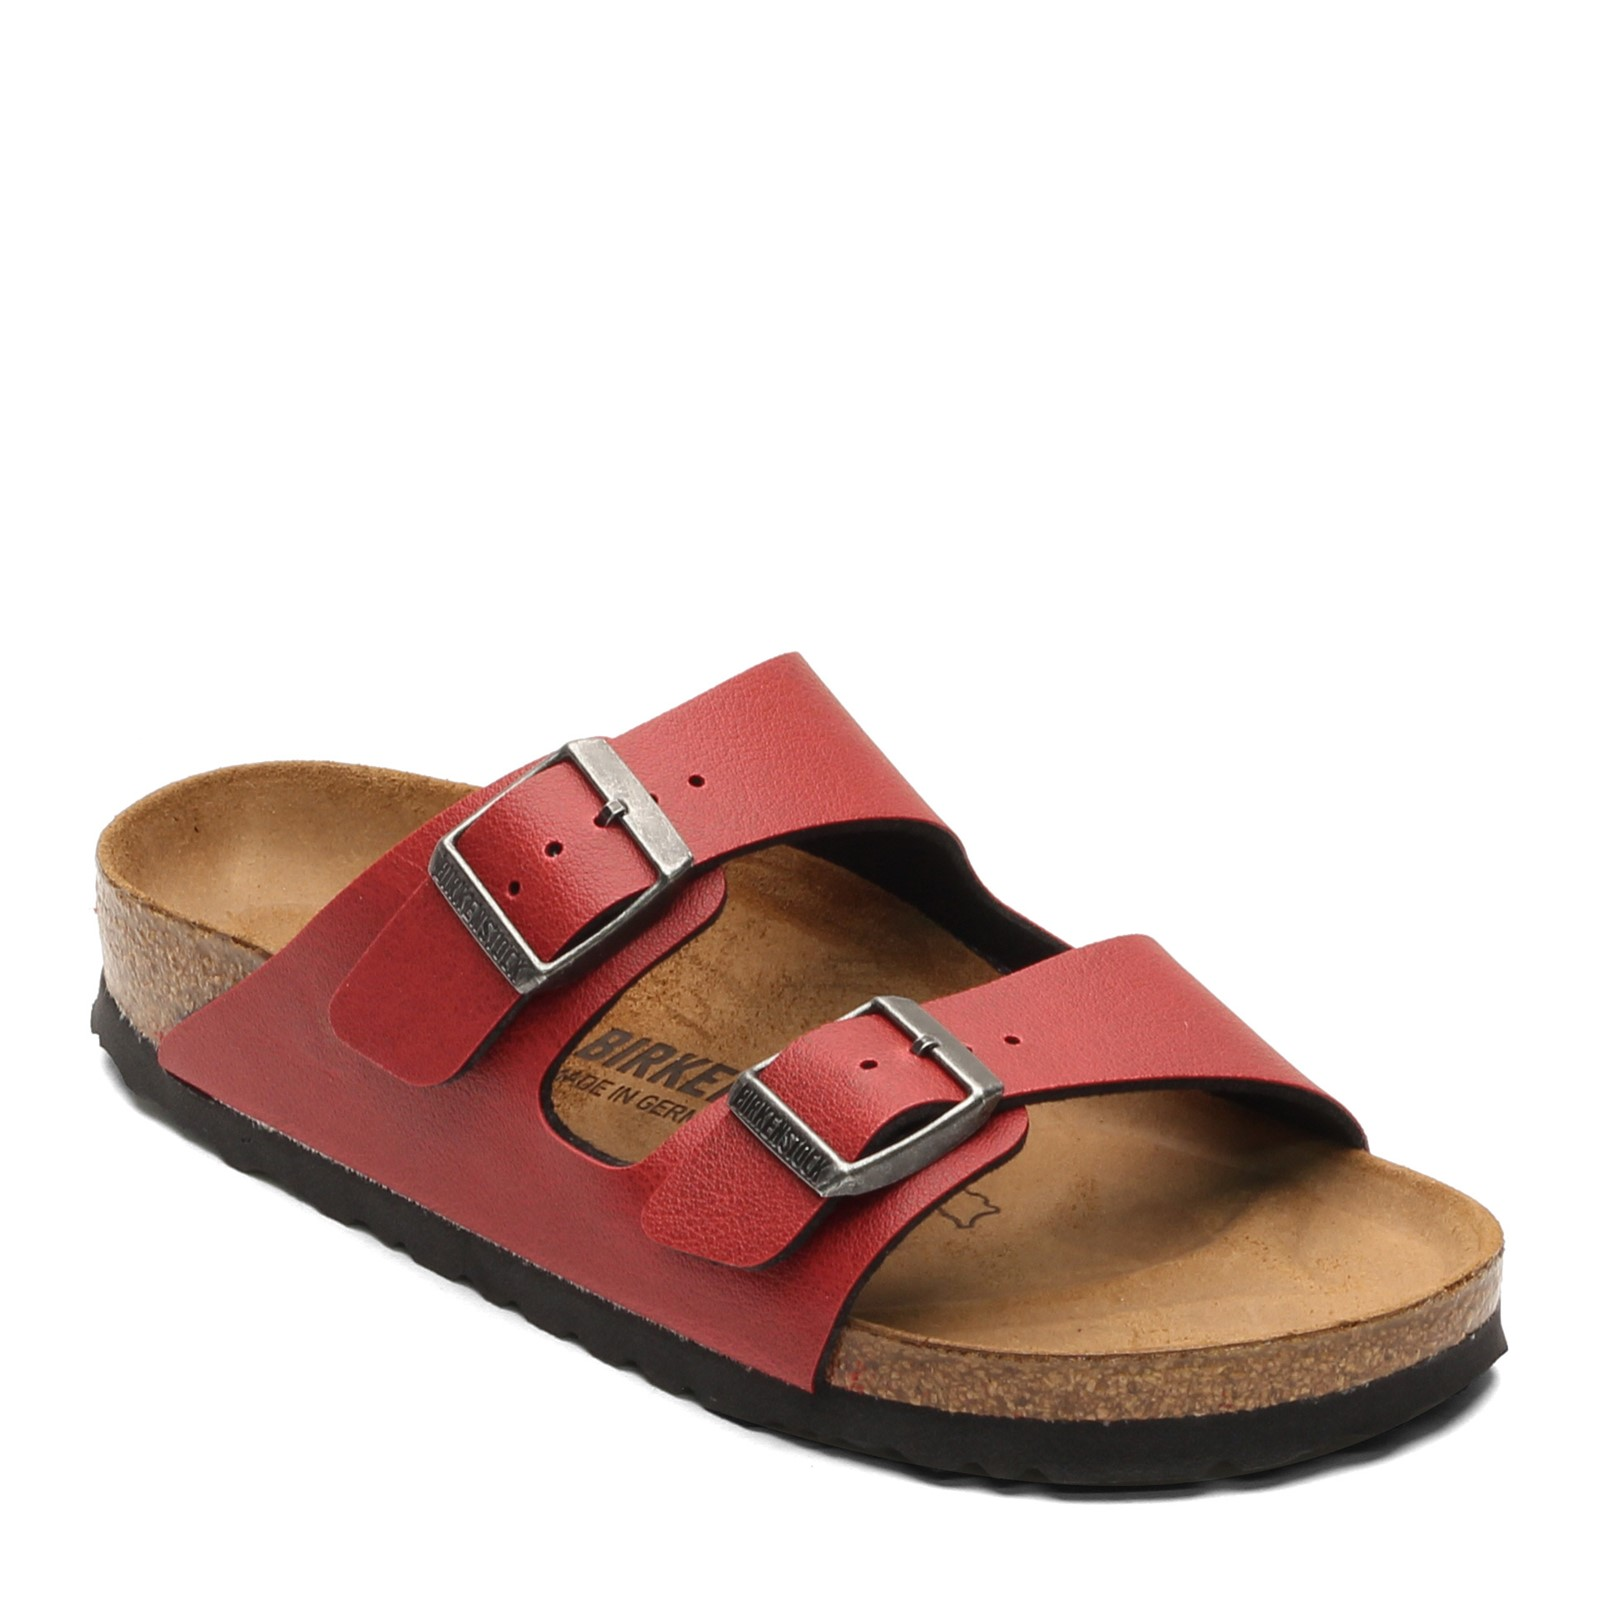 Women's Birkenstock, Arizona Narrow